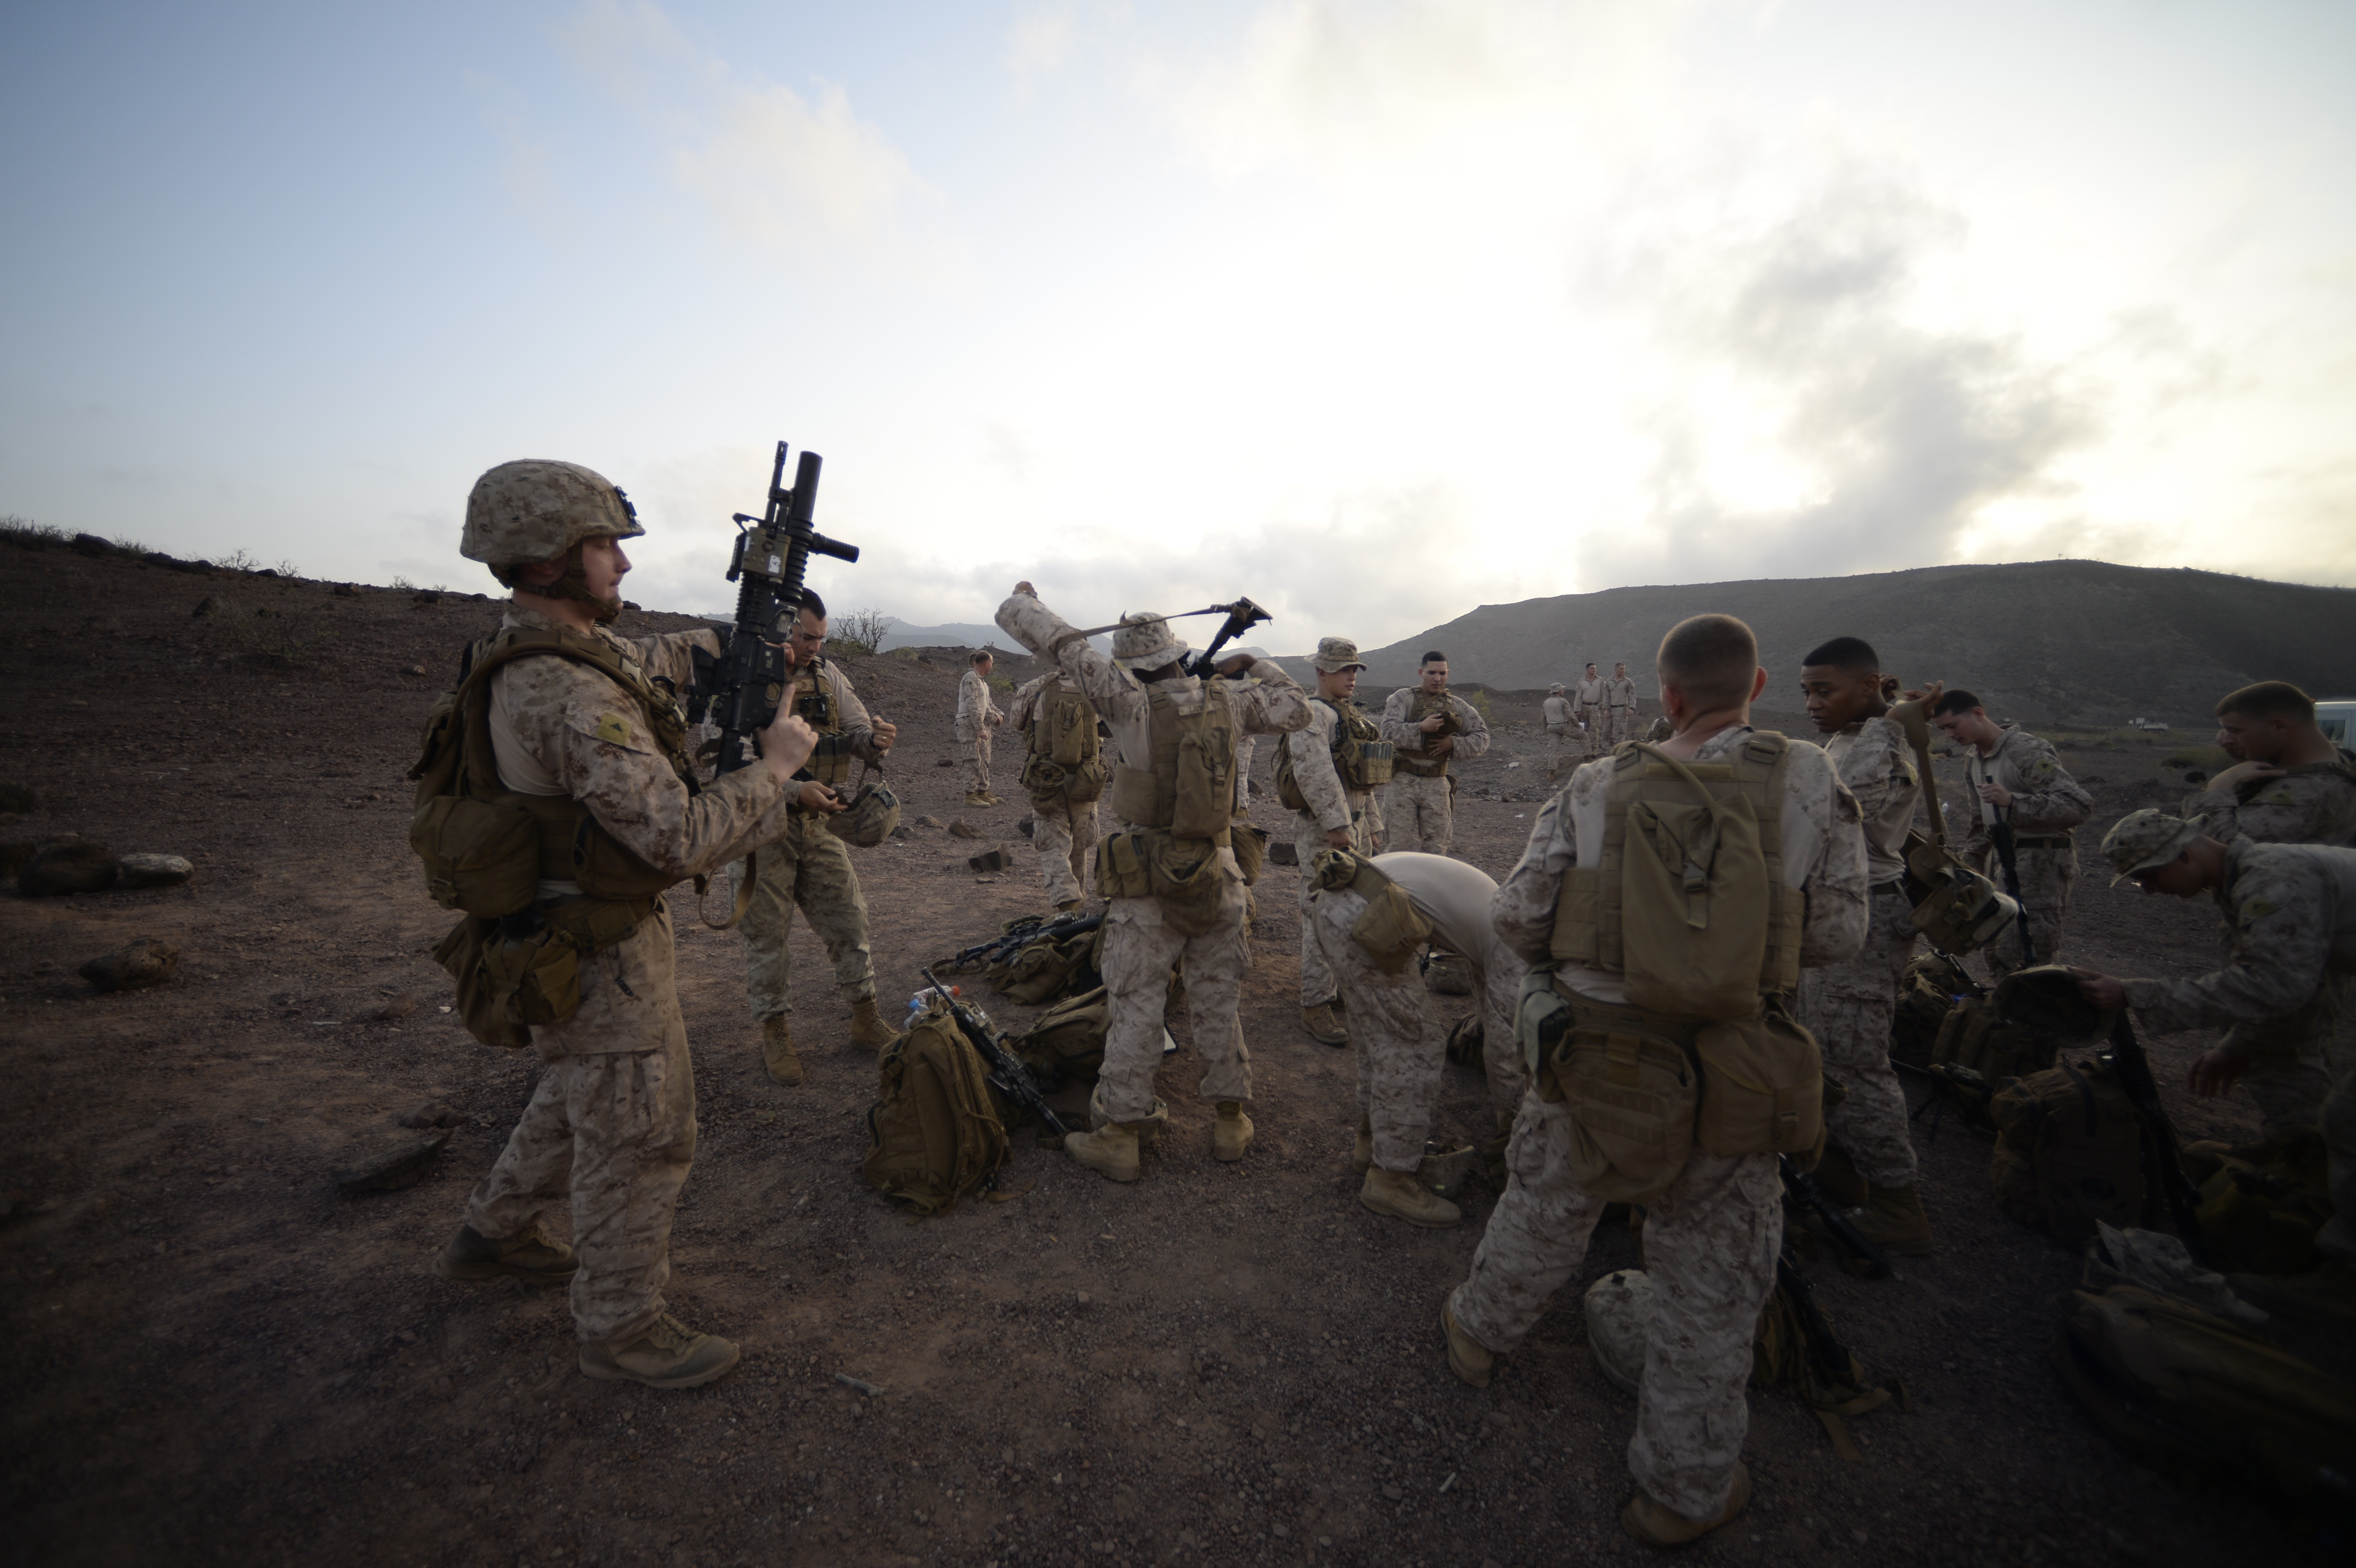 ARTA, Djibouti – U.S. Marines with Special-Purpose Marine Air-Ground Task Force Crisis Response-Africa (SPMAGTF-CR-AF), conduct small arms fire team training, Oct. 5, 2016, at Arta, Djibouti. Assigned to Combined Joint Task Force-Horn of Africa, SPMAGTF-CR-AF completed team level range drills to continue sustainment of core skills and build from individual skill levels. The next level of training will consist of squad training. (U.S. Air Force photo by Staff Sgt. Rion Ehrman)